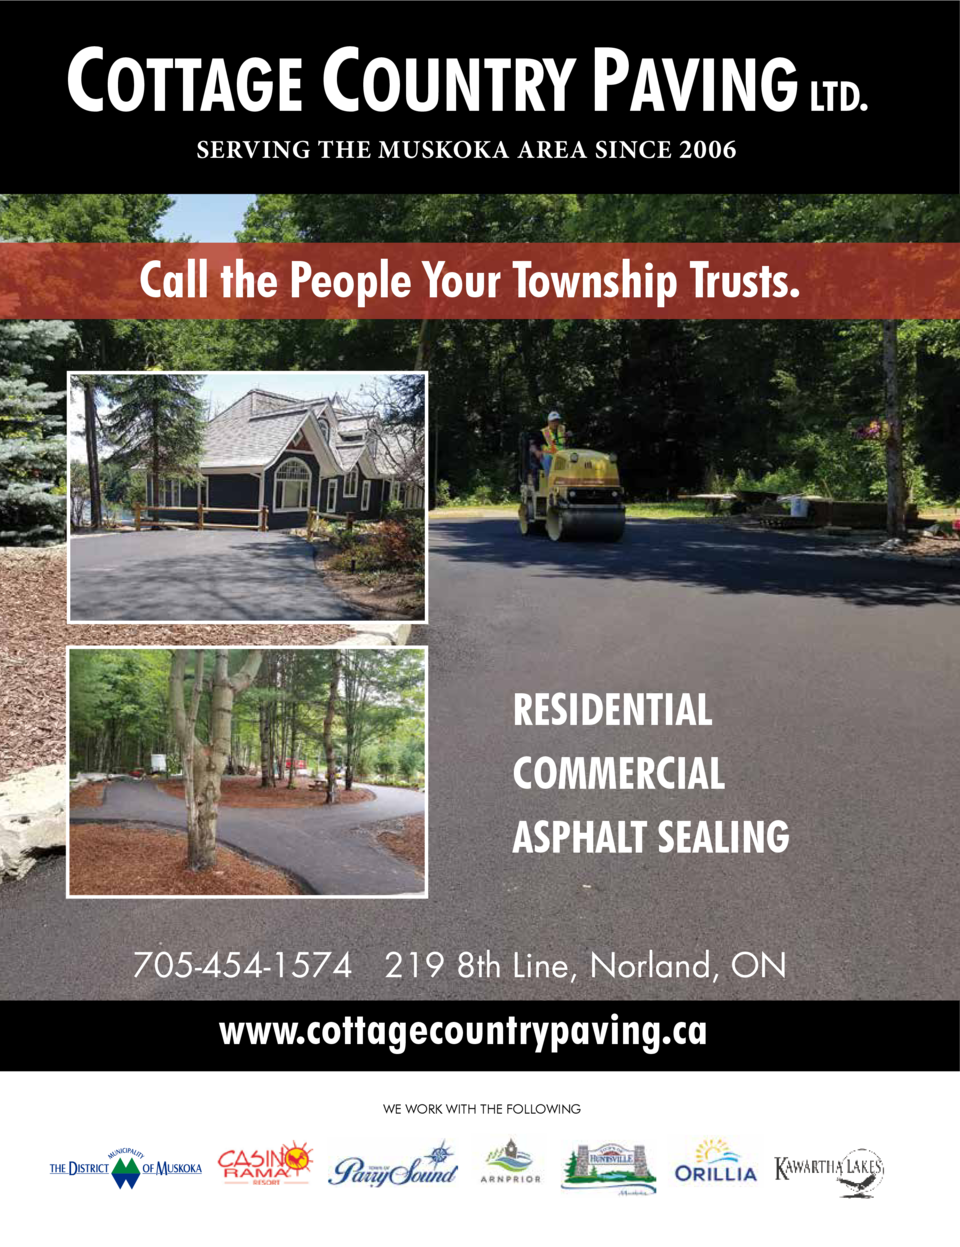 COTTAGE COUNTRY PAVING LTD. SERVING THE MUSKOKA AREA SINCE 2006  Call the People Your Township Trusts.  RESIDENTIAL COMMER...